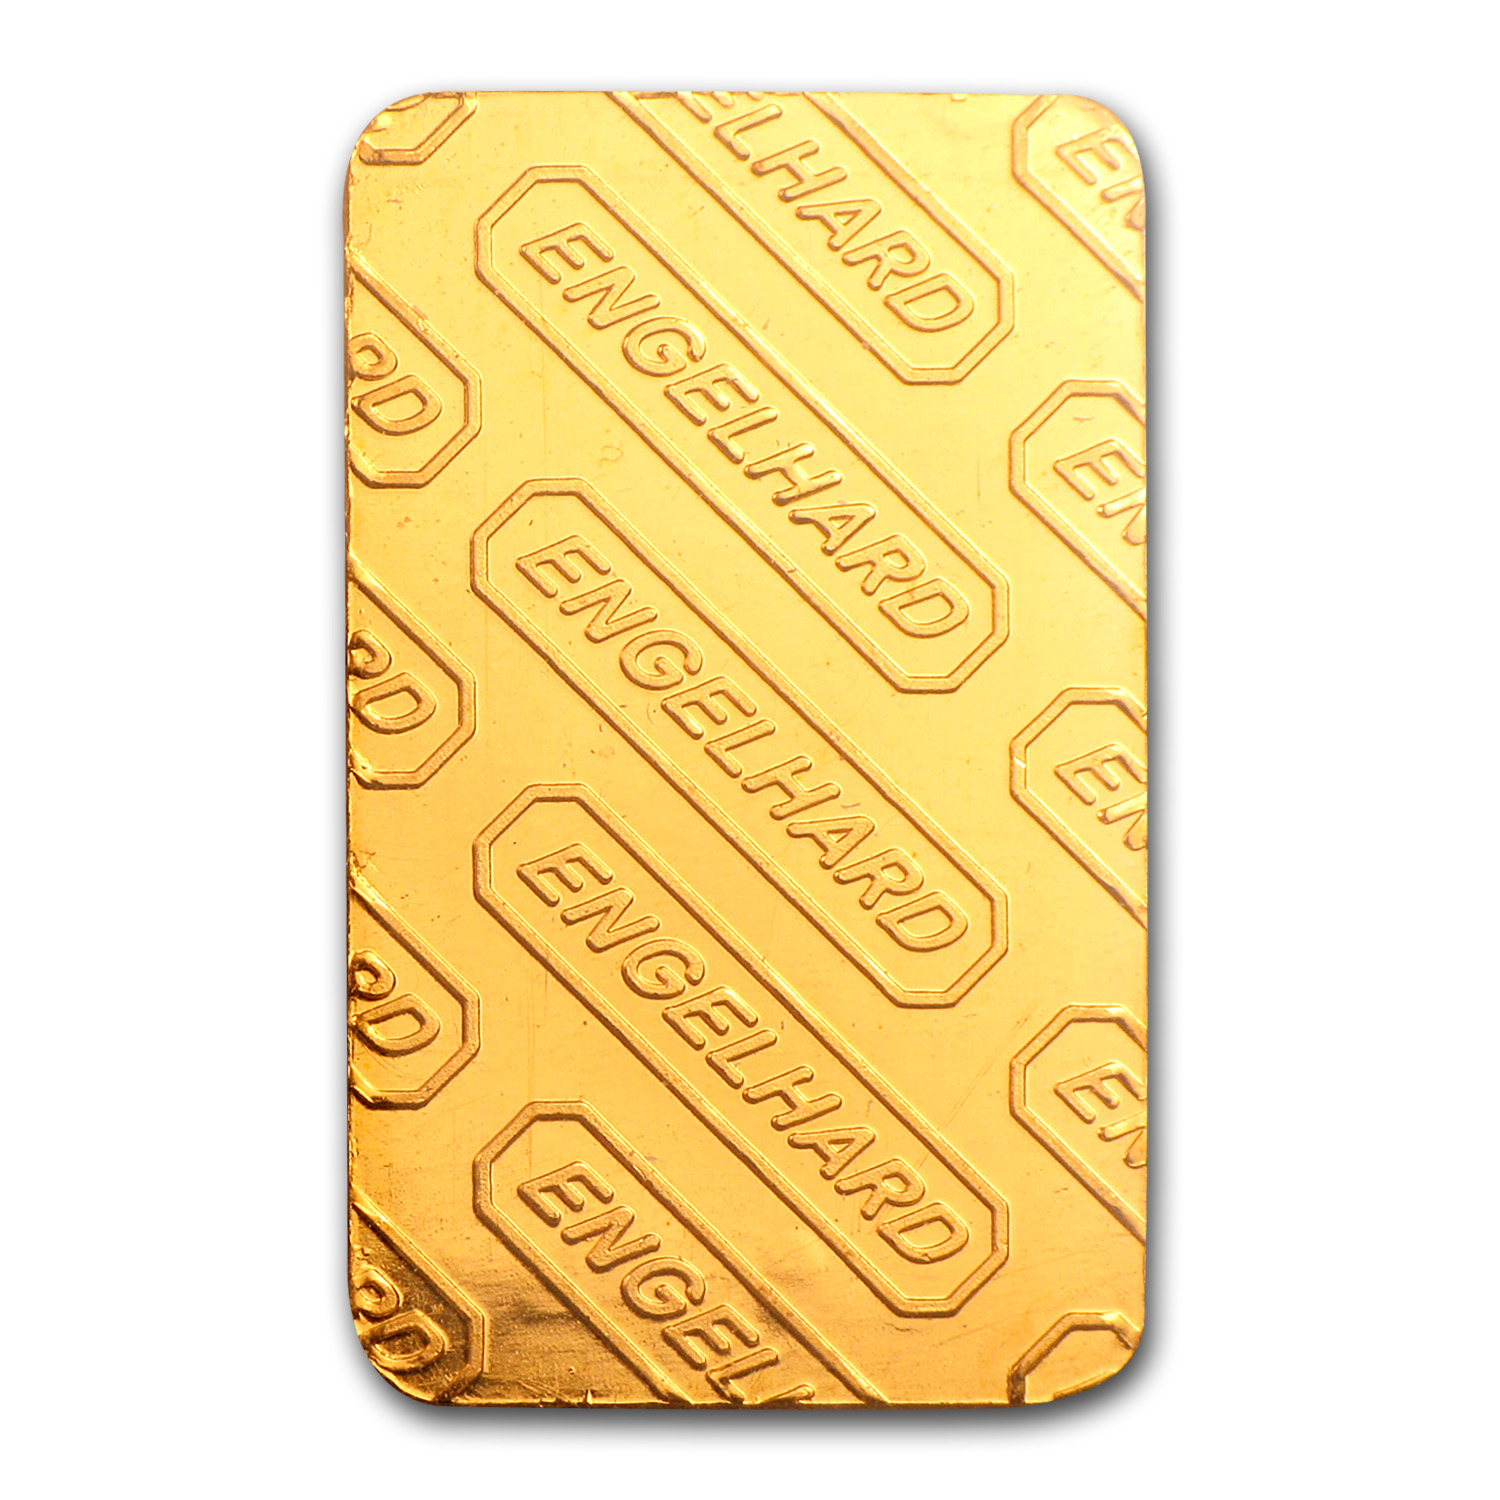 1/4 oz Gold Bar - Engelhard (In Assay)